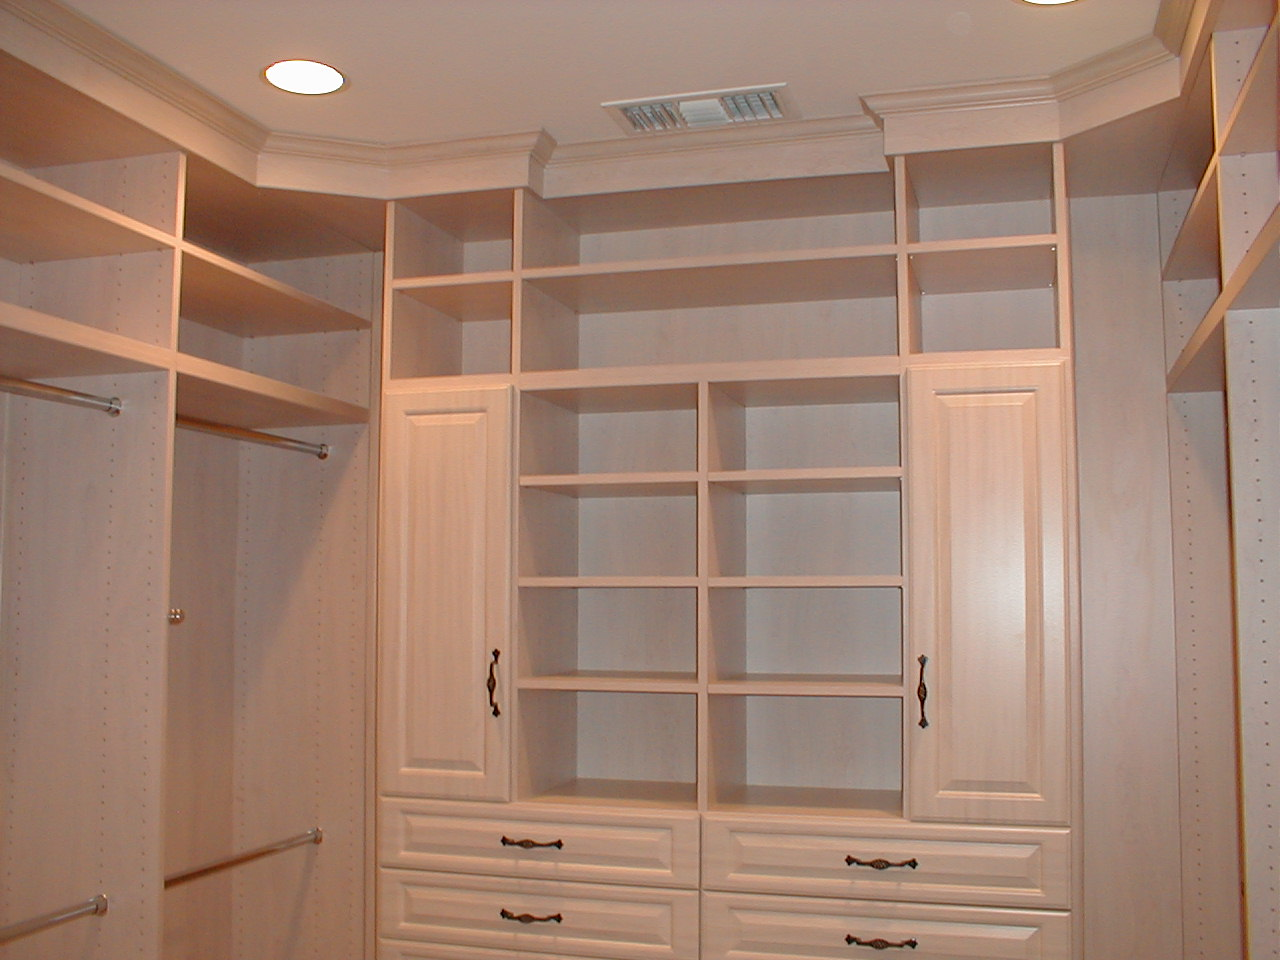 Apartment Closet Ideas White Cabinets White Shelves Hidden Lamps Steel Sticks